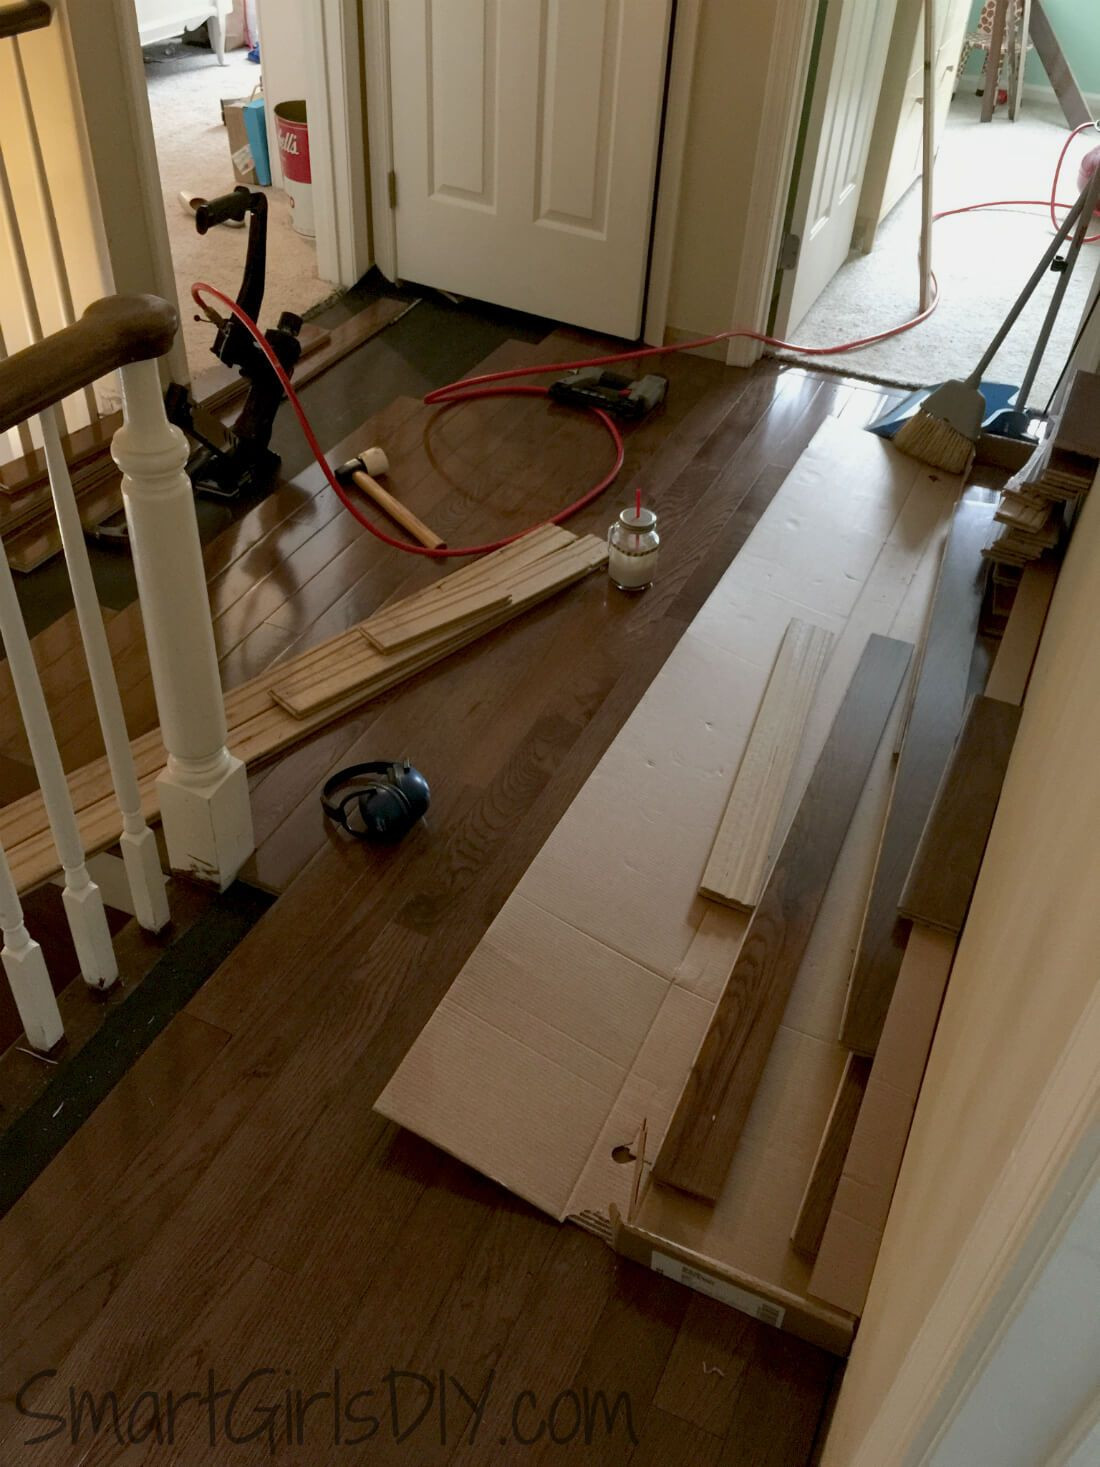 Installing solid Hardwood Floors Of Upstairs Hallway 1 Installing Hardwood Floors In How to Install Hardwood Floor All by Yourself